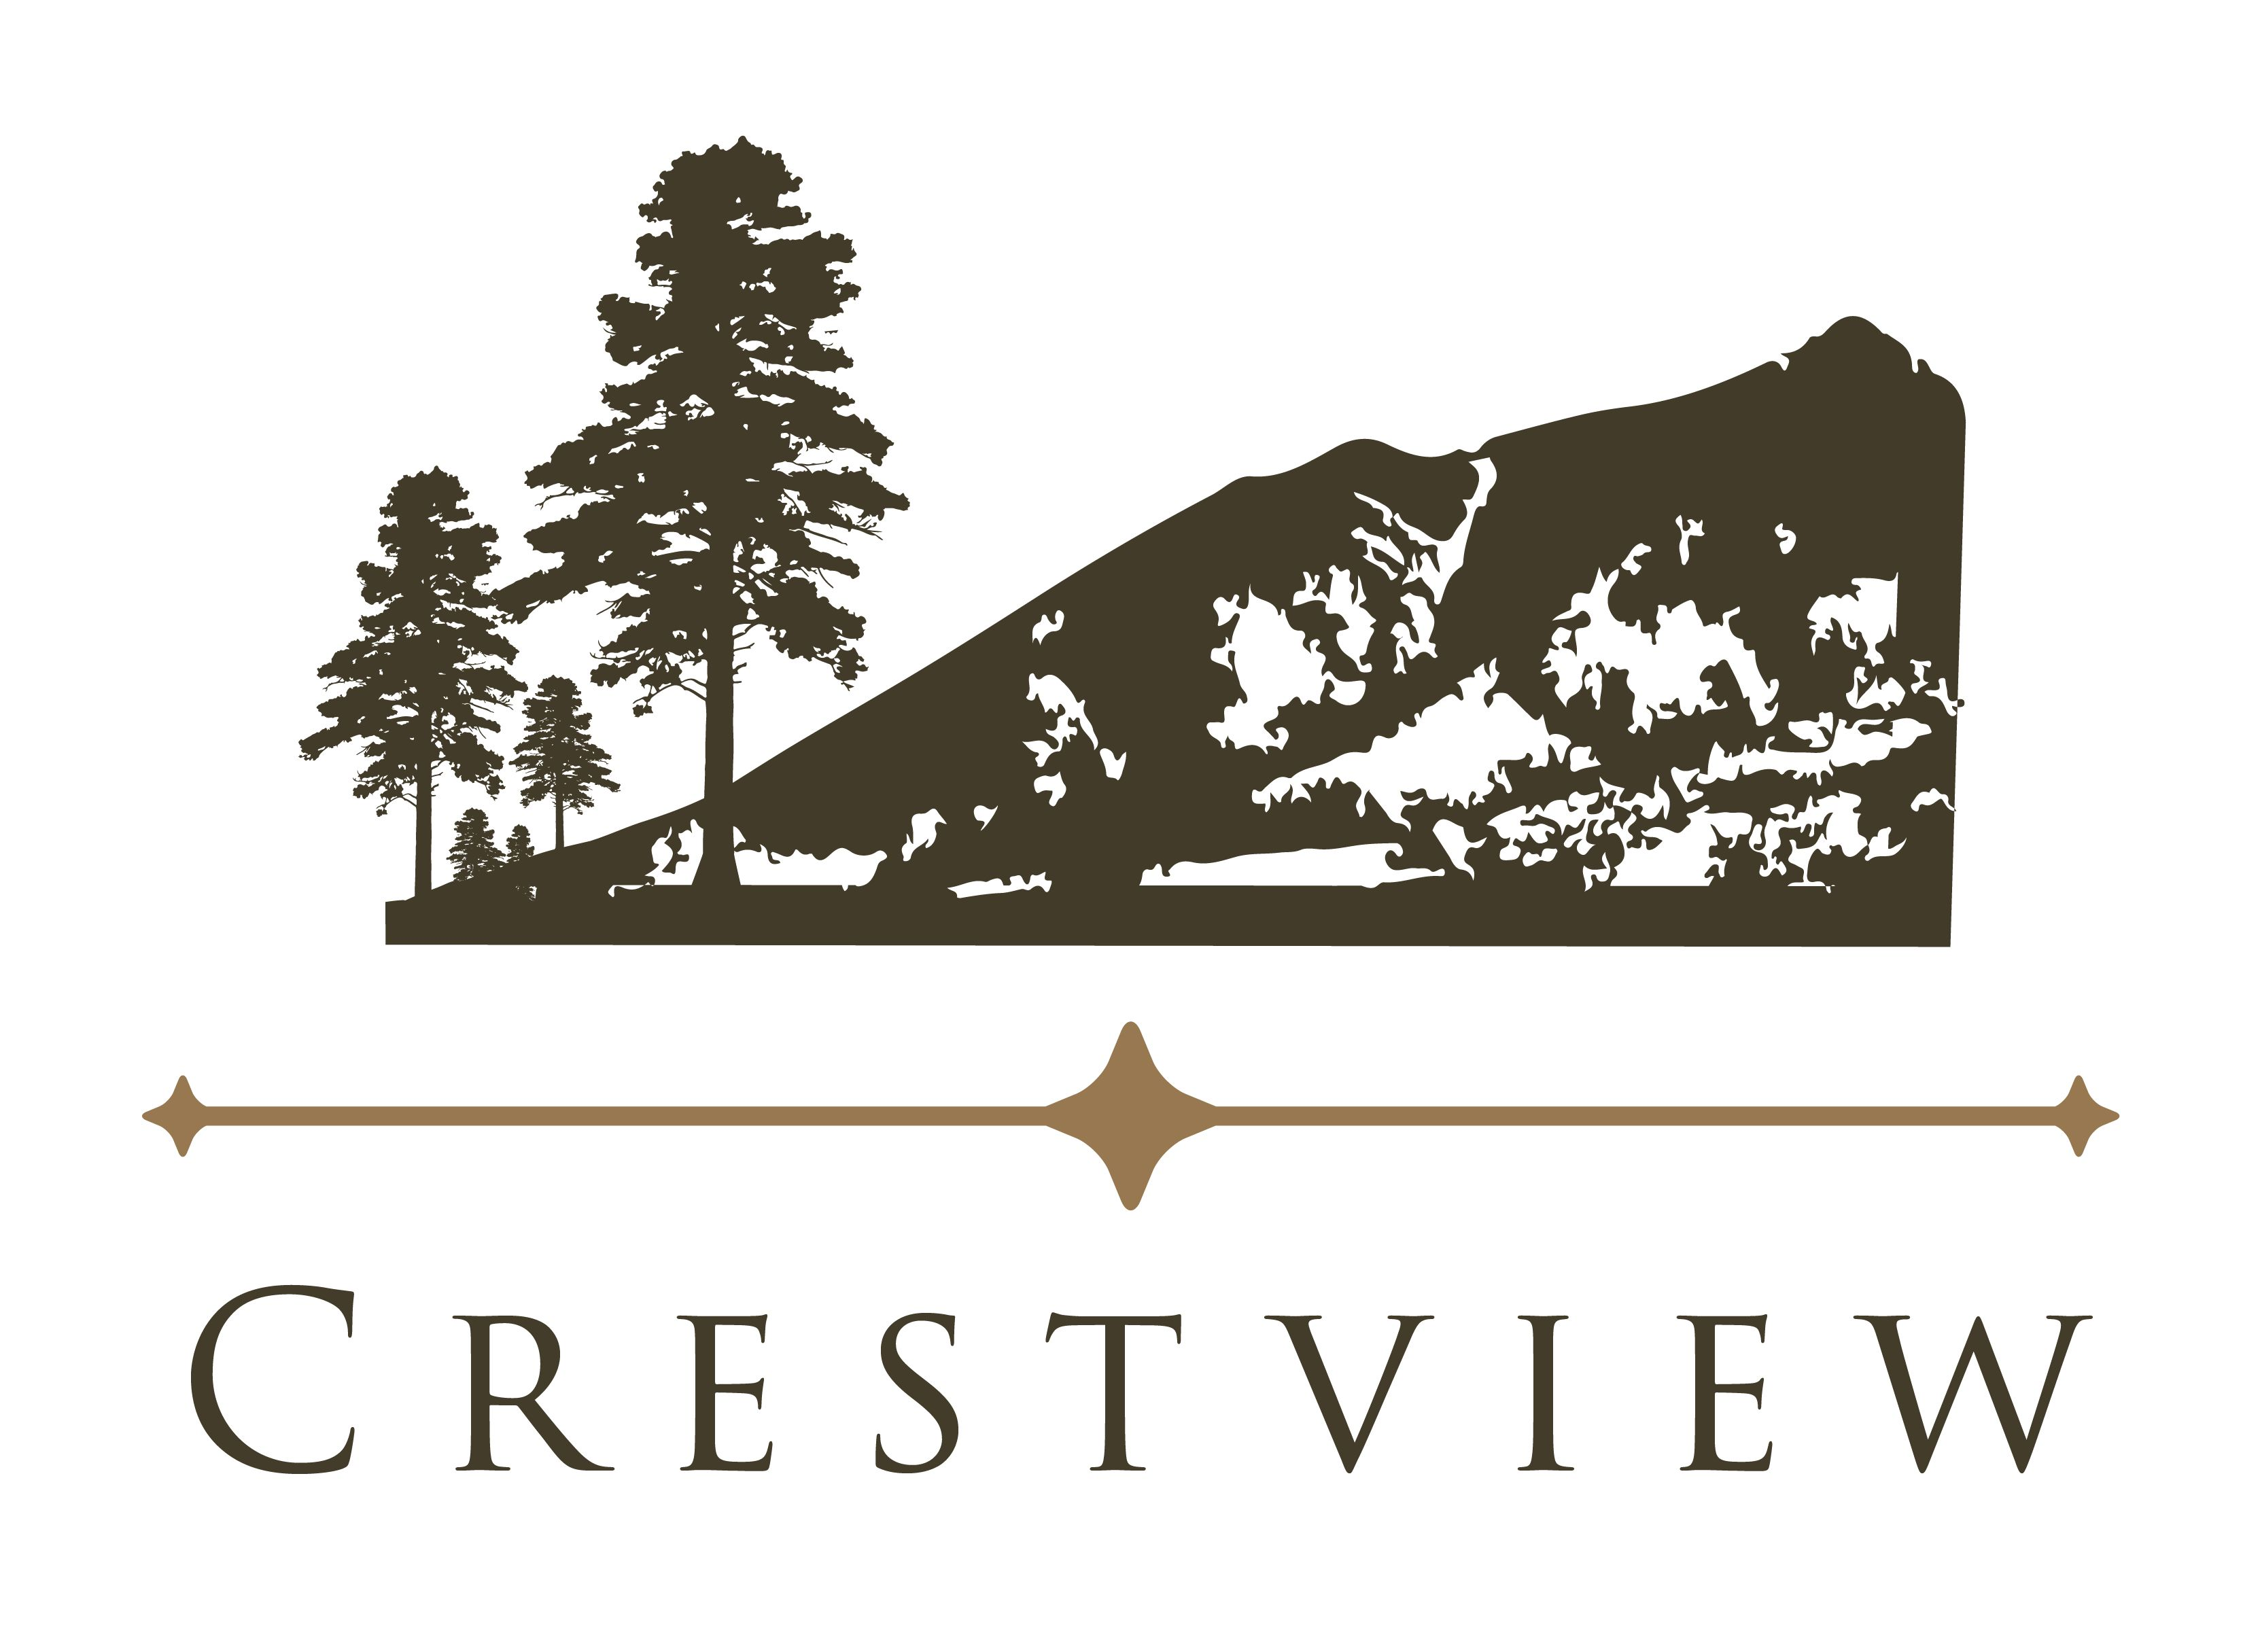 Crestview by capstone homes arizona w putnam drive flagstaff